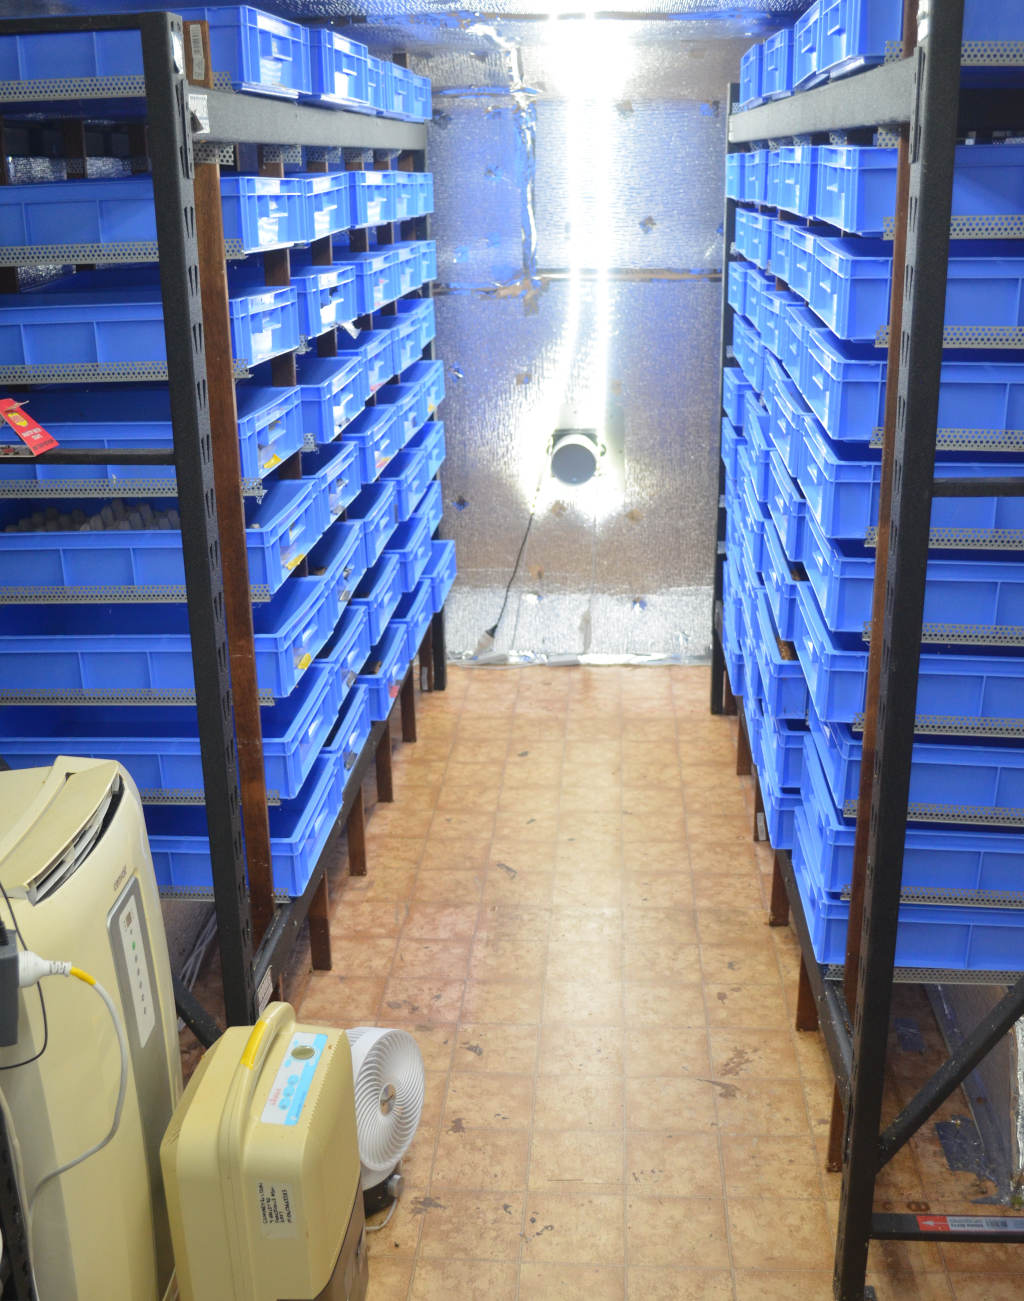 photo of a commercial mealworm farm with multiple racks of blue mealworm trays. Mealworm farm is climatically controlled with an air conditioner, humudifier, ventilation fans and aluminium reflective insulation.